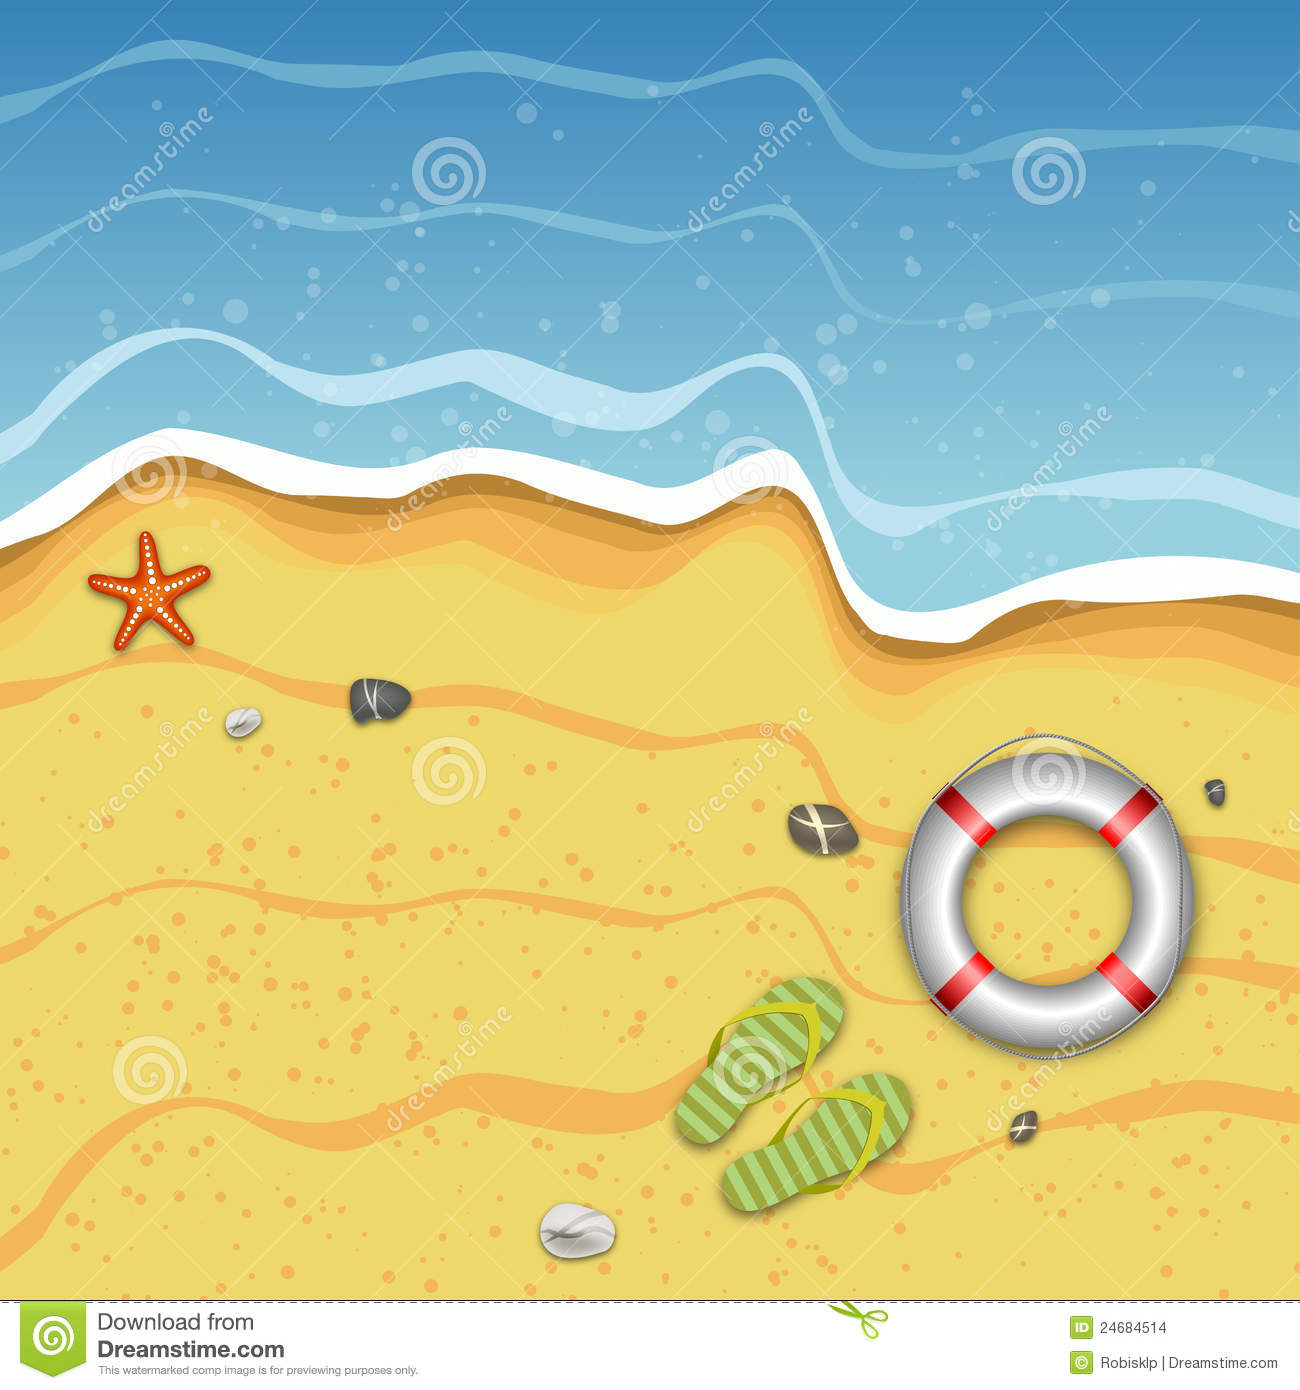 summer vector illustraitons - photo #46